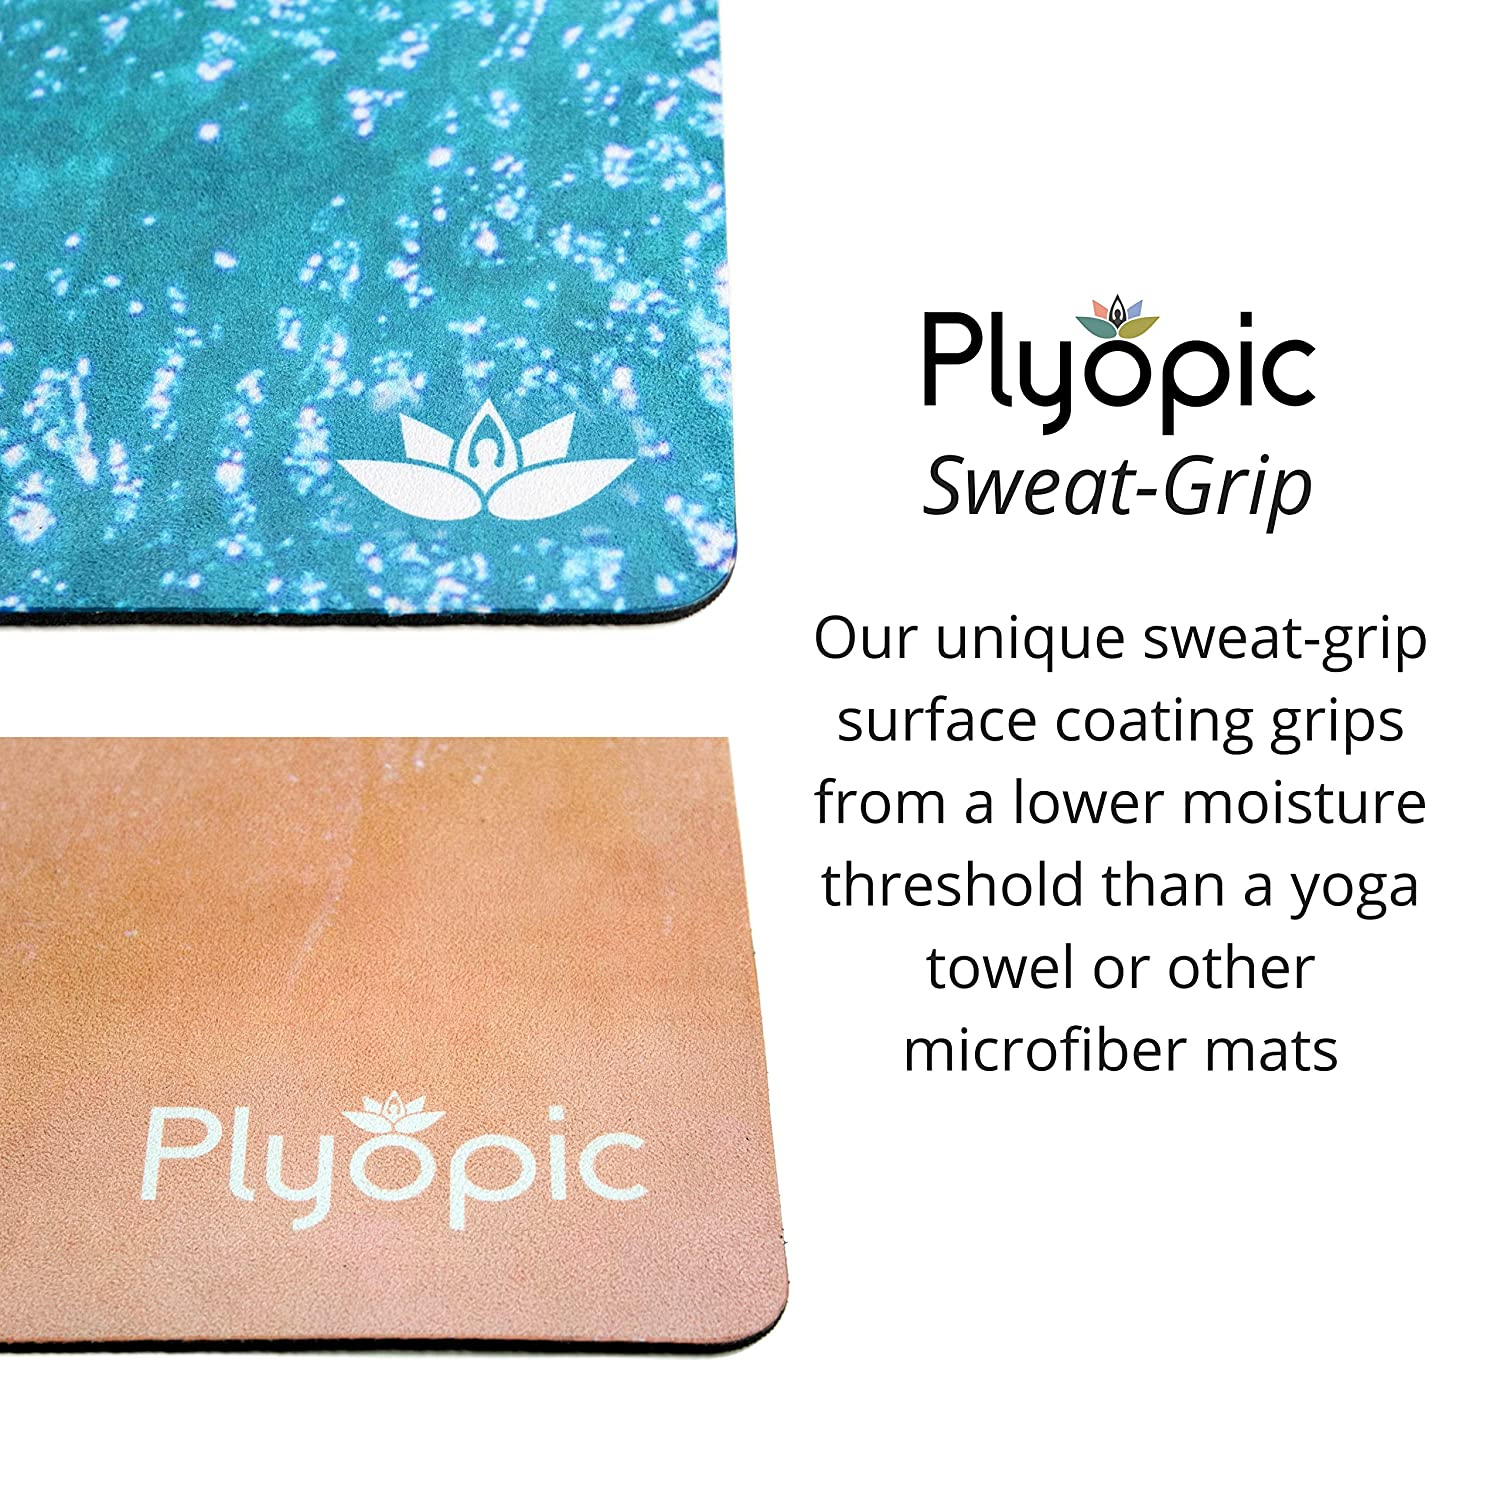 Workout Best for Yoga Luxury Sweat-Grip Mat//Towel Combo Exercise Bikram and Hot Yoga Plyopic All-in-One Yoga Mat Eco-Friendly Natural Rubber Pilates